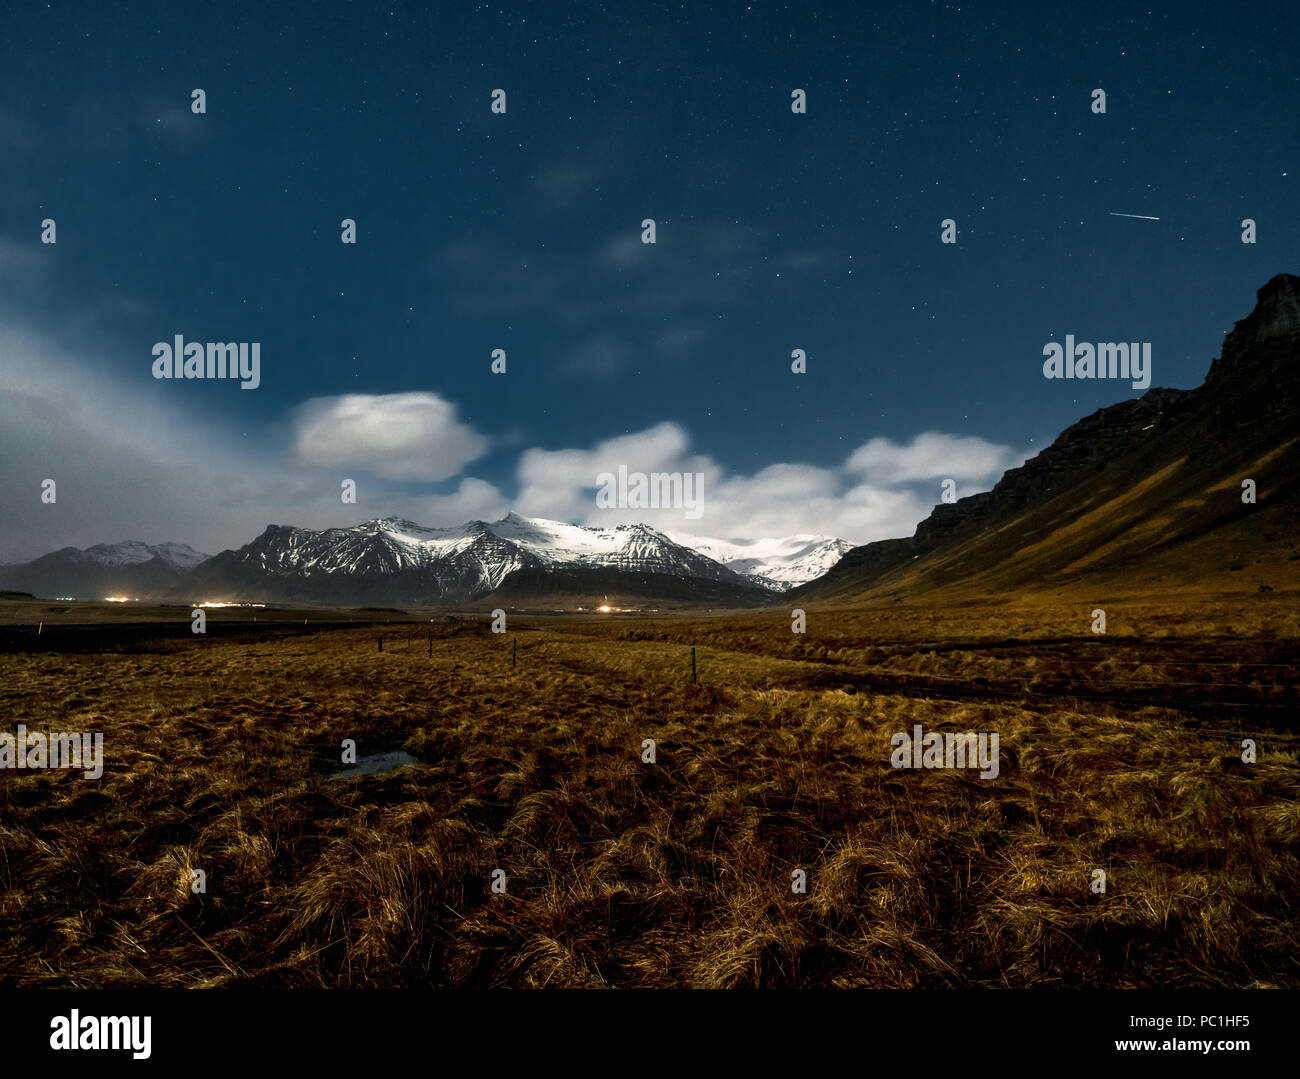 Night View Iceland with grass and blue sky stars with clouds and with view towards mountain. Southern side if the country. - Stock Image